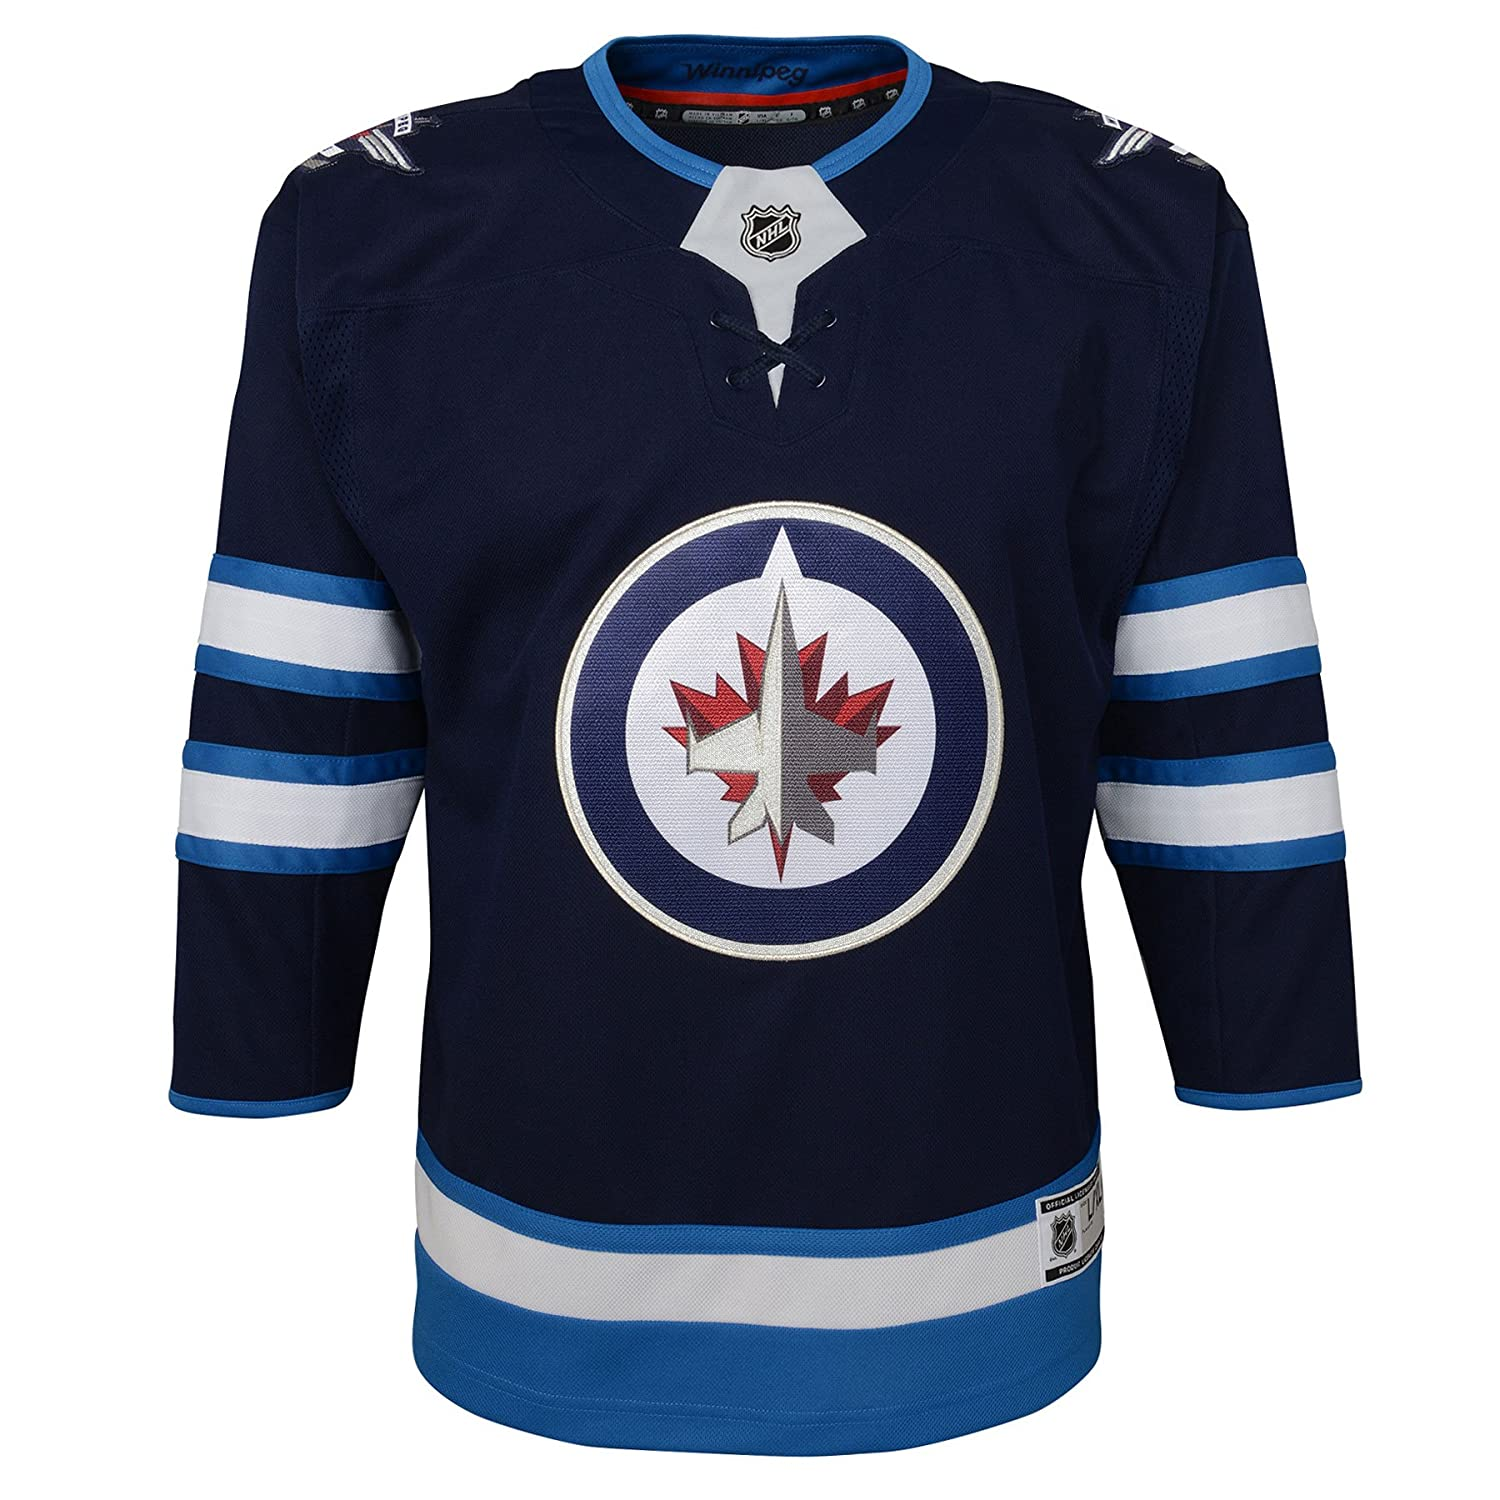 Winnipeg Jets Toddler Premier Home Jersey - Size 2T/4T Outerstuff